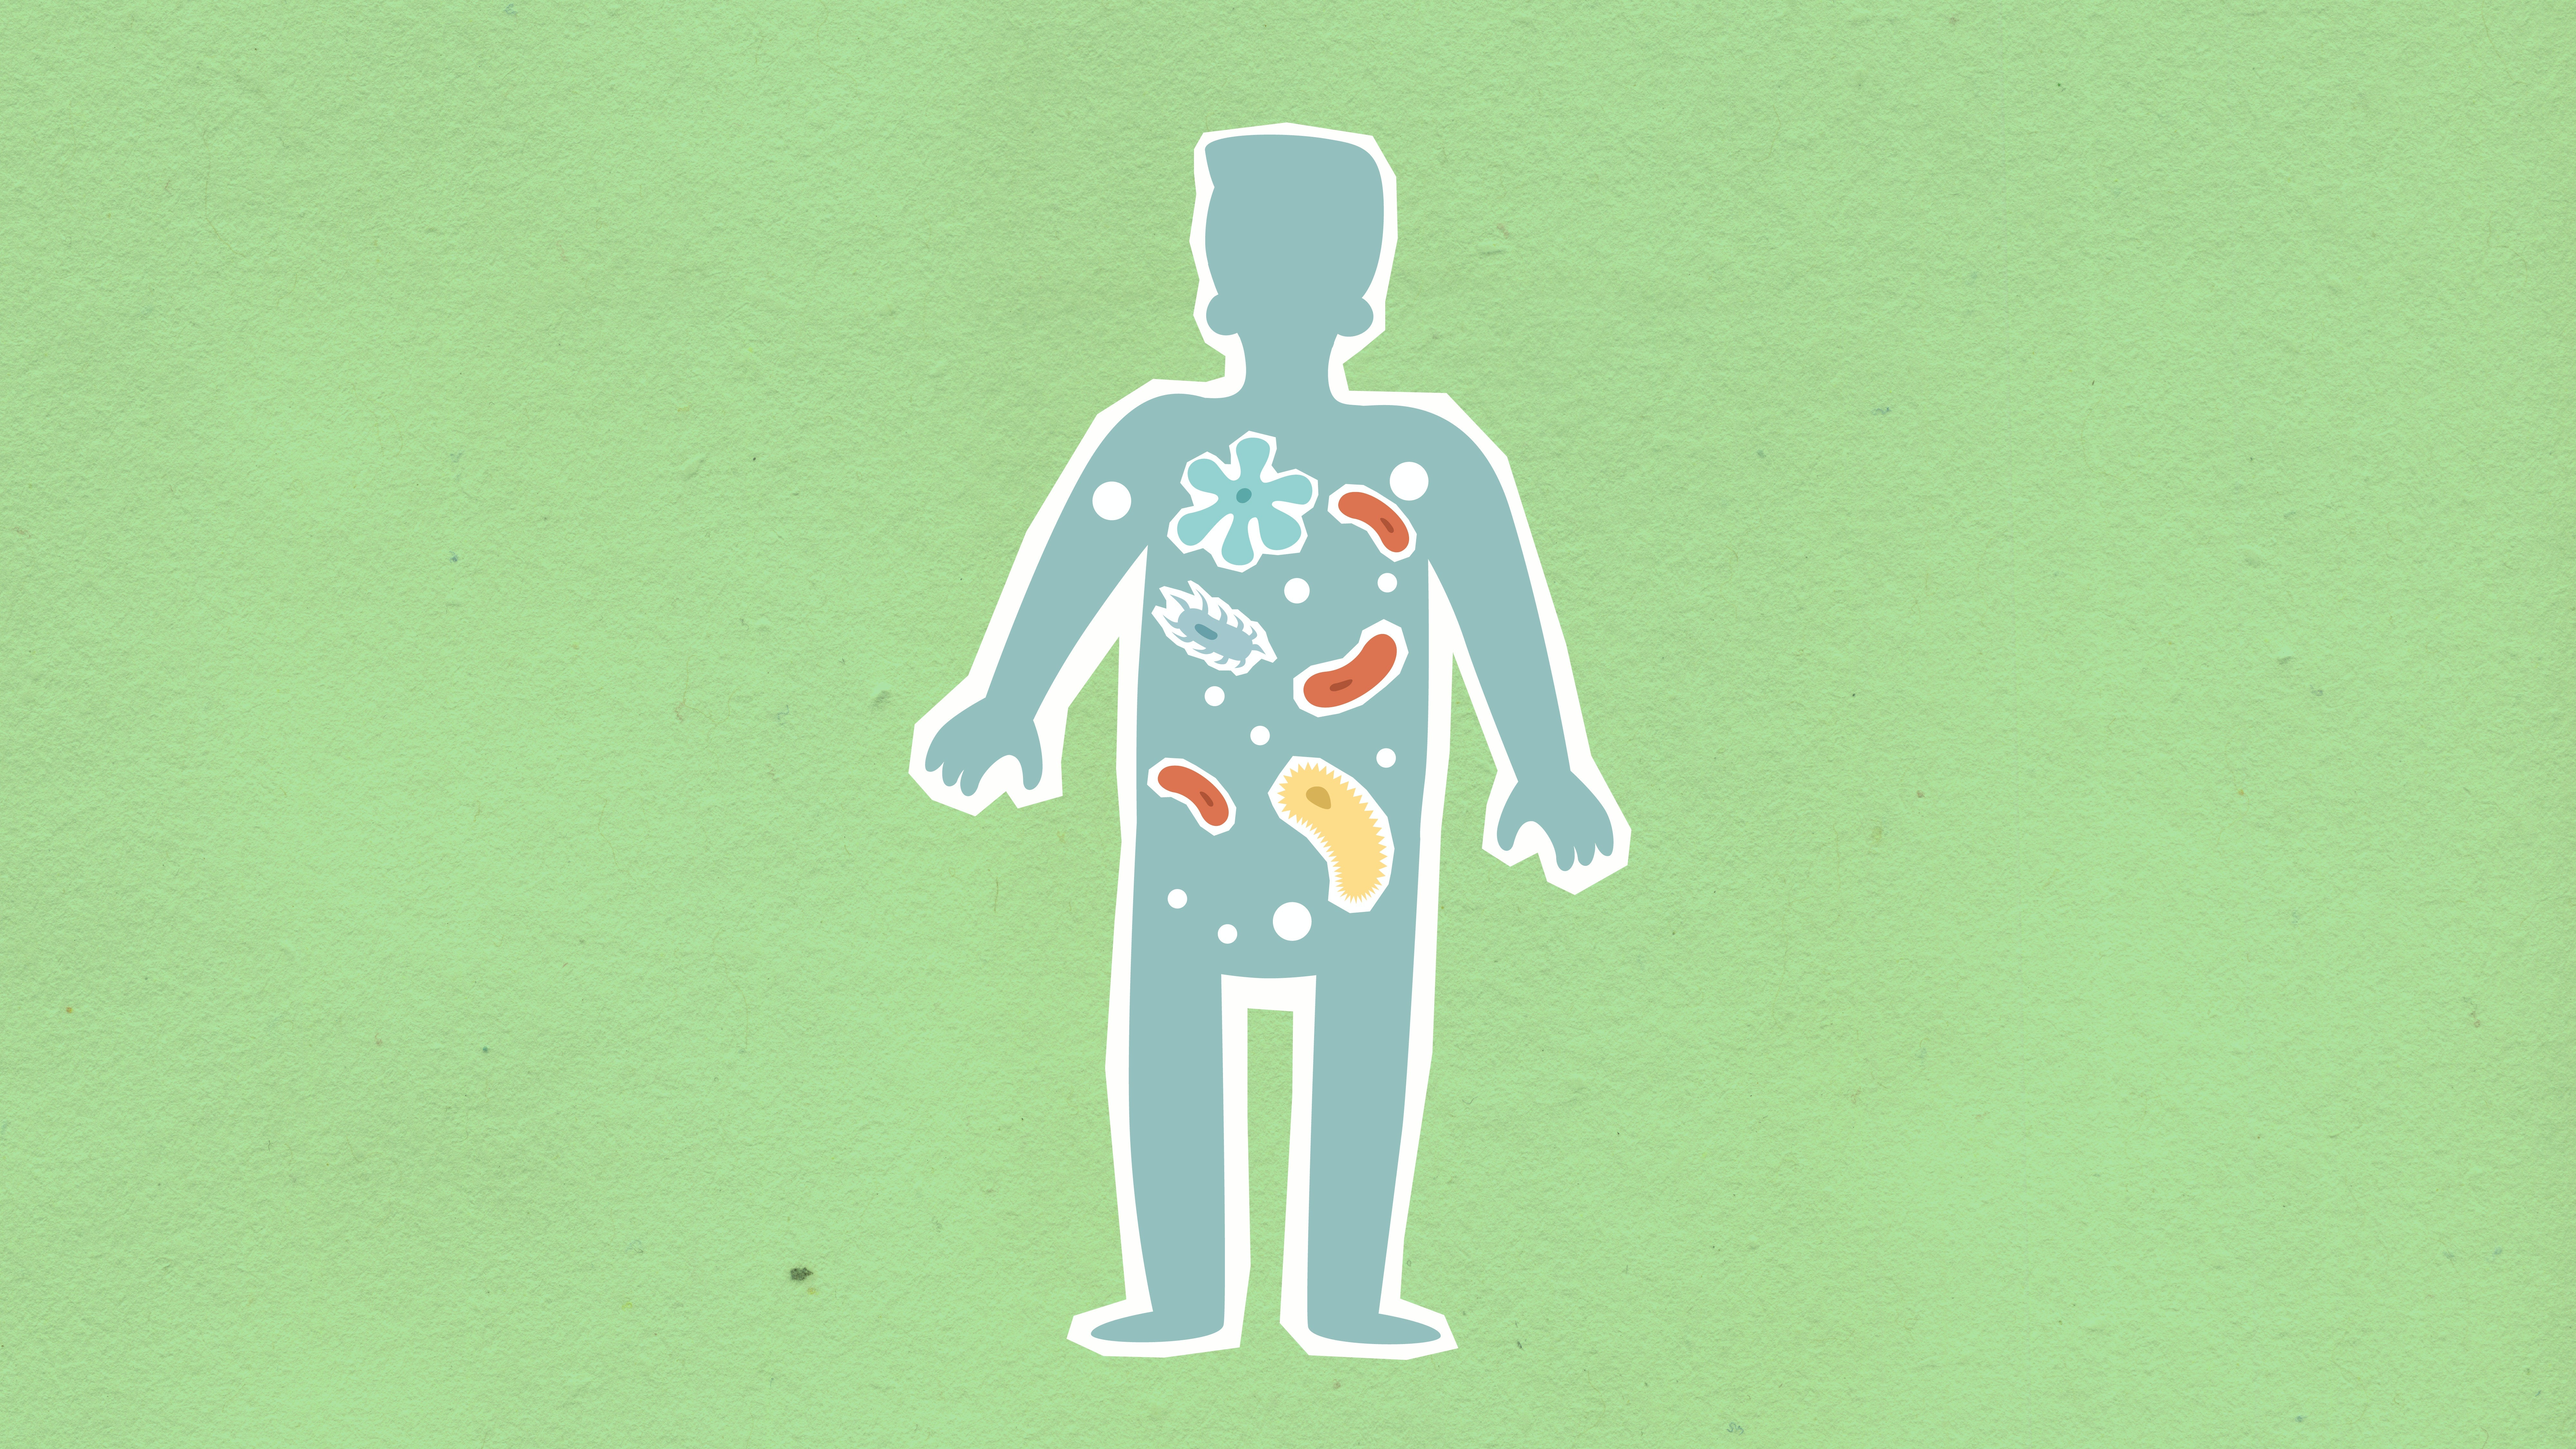 An illustration of bacteria inside the human body